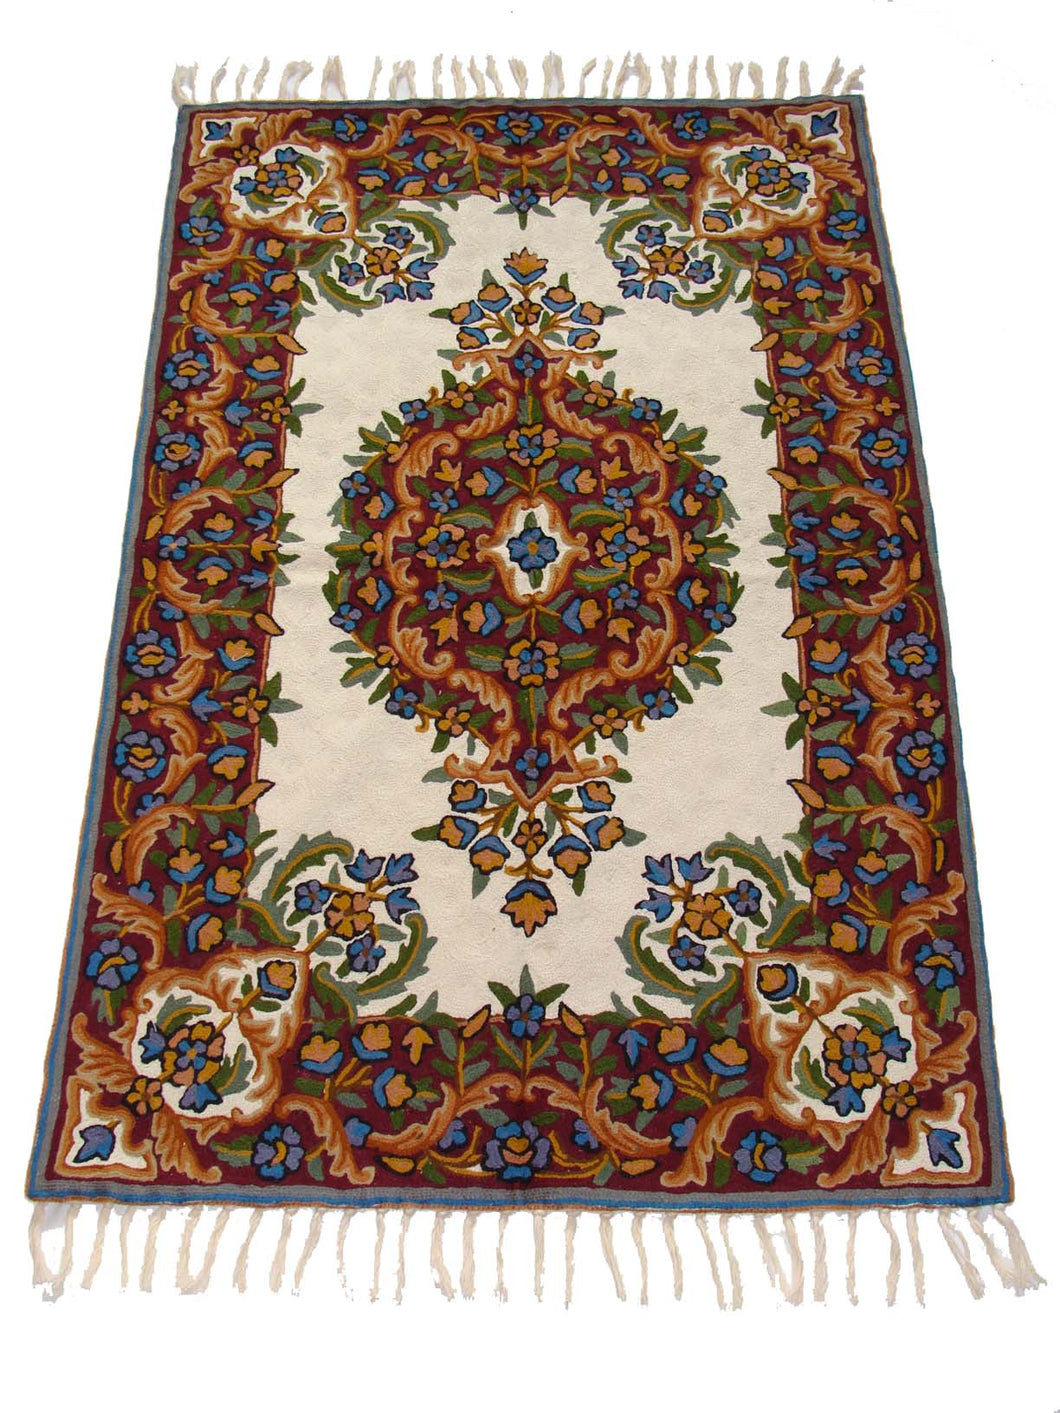 Chain Stitch Rug Carpet Hand Made Kashmir Crewel Wool Embroidered Floor Area Rug 2.5 x 4 Feet